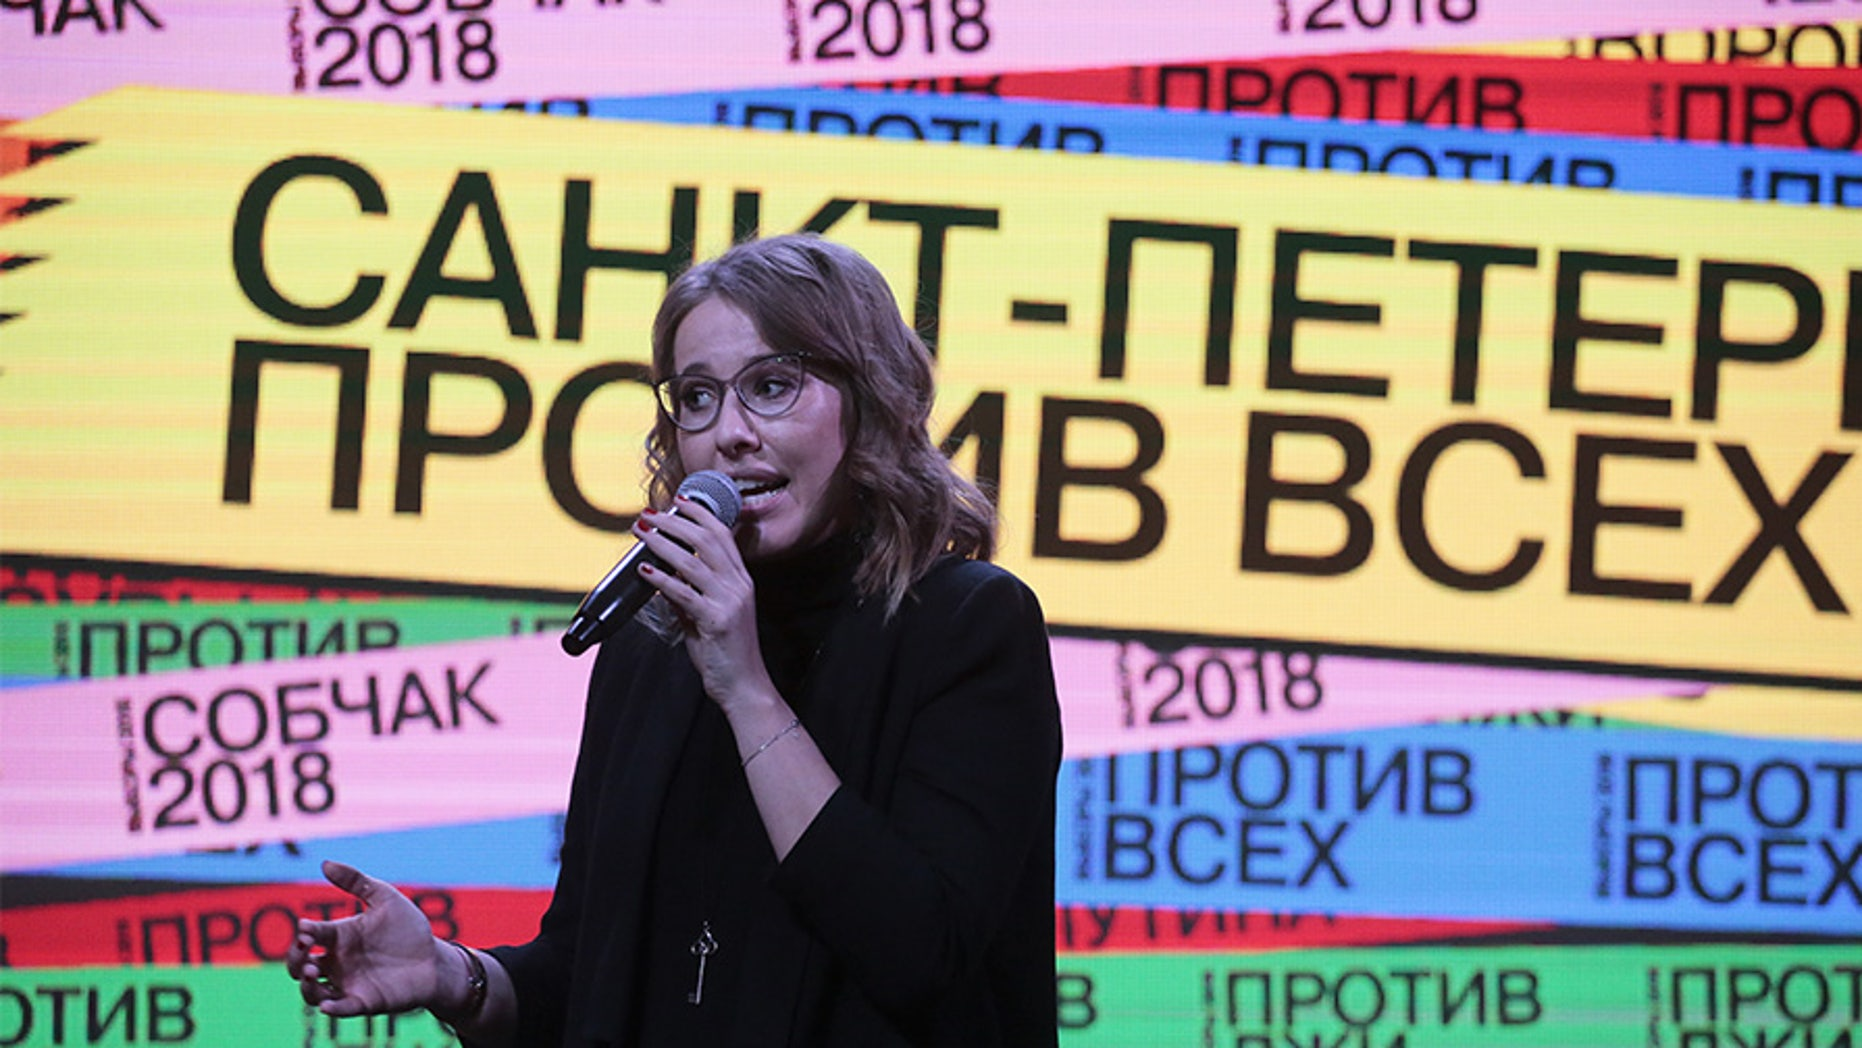 Russian celebrity TV host Ksenia Sobchak hopes to challenge Russian President Vladimir Putin in the March 18 presidential election.